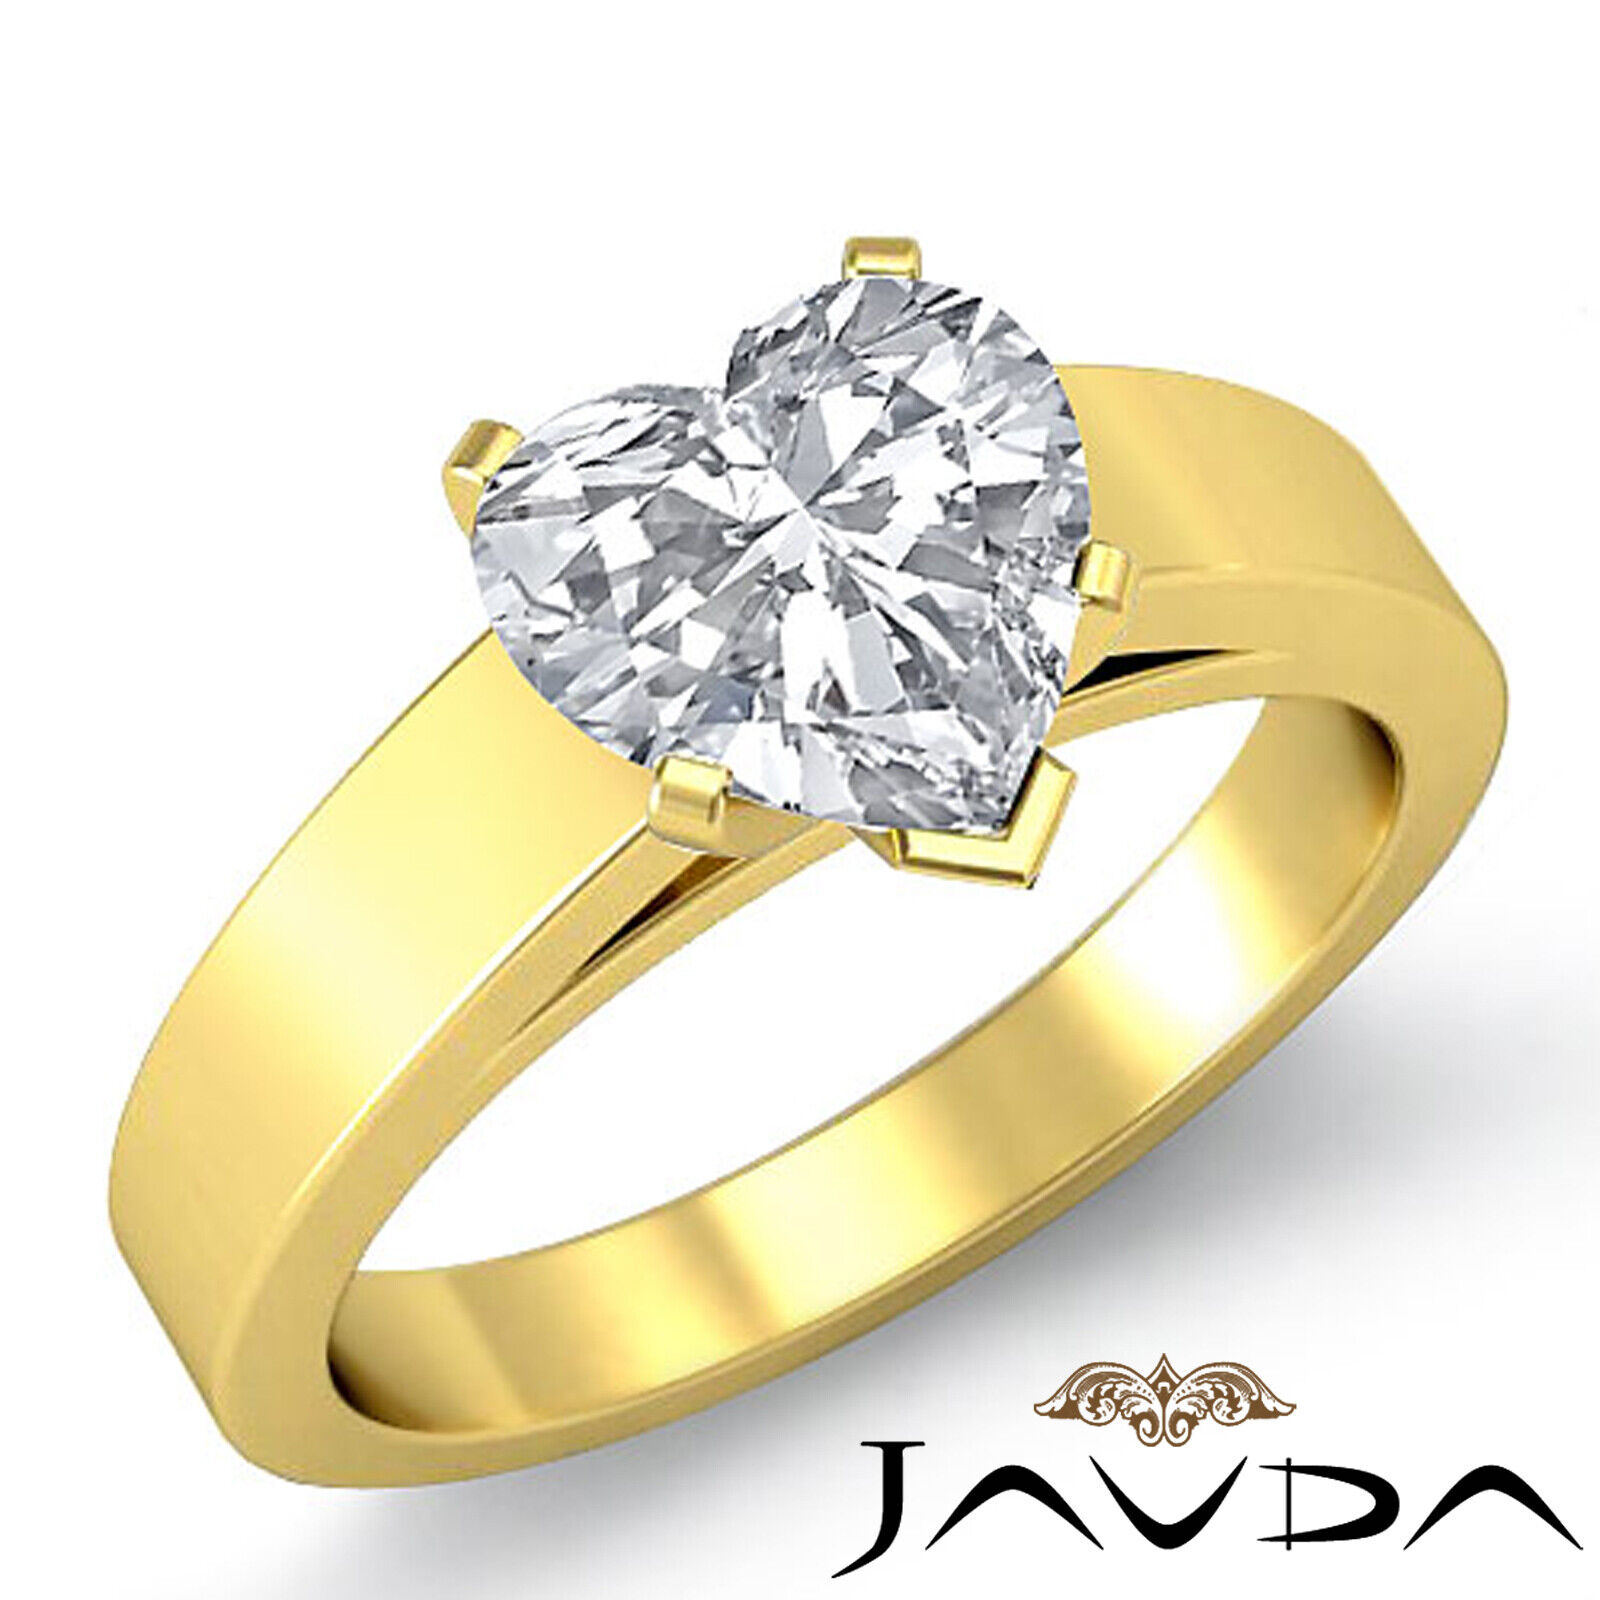 Heart Diamond Engagement GIA H VS2 4 Prong cathedral Solitaire Gold Ring 1.2 ct. 1